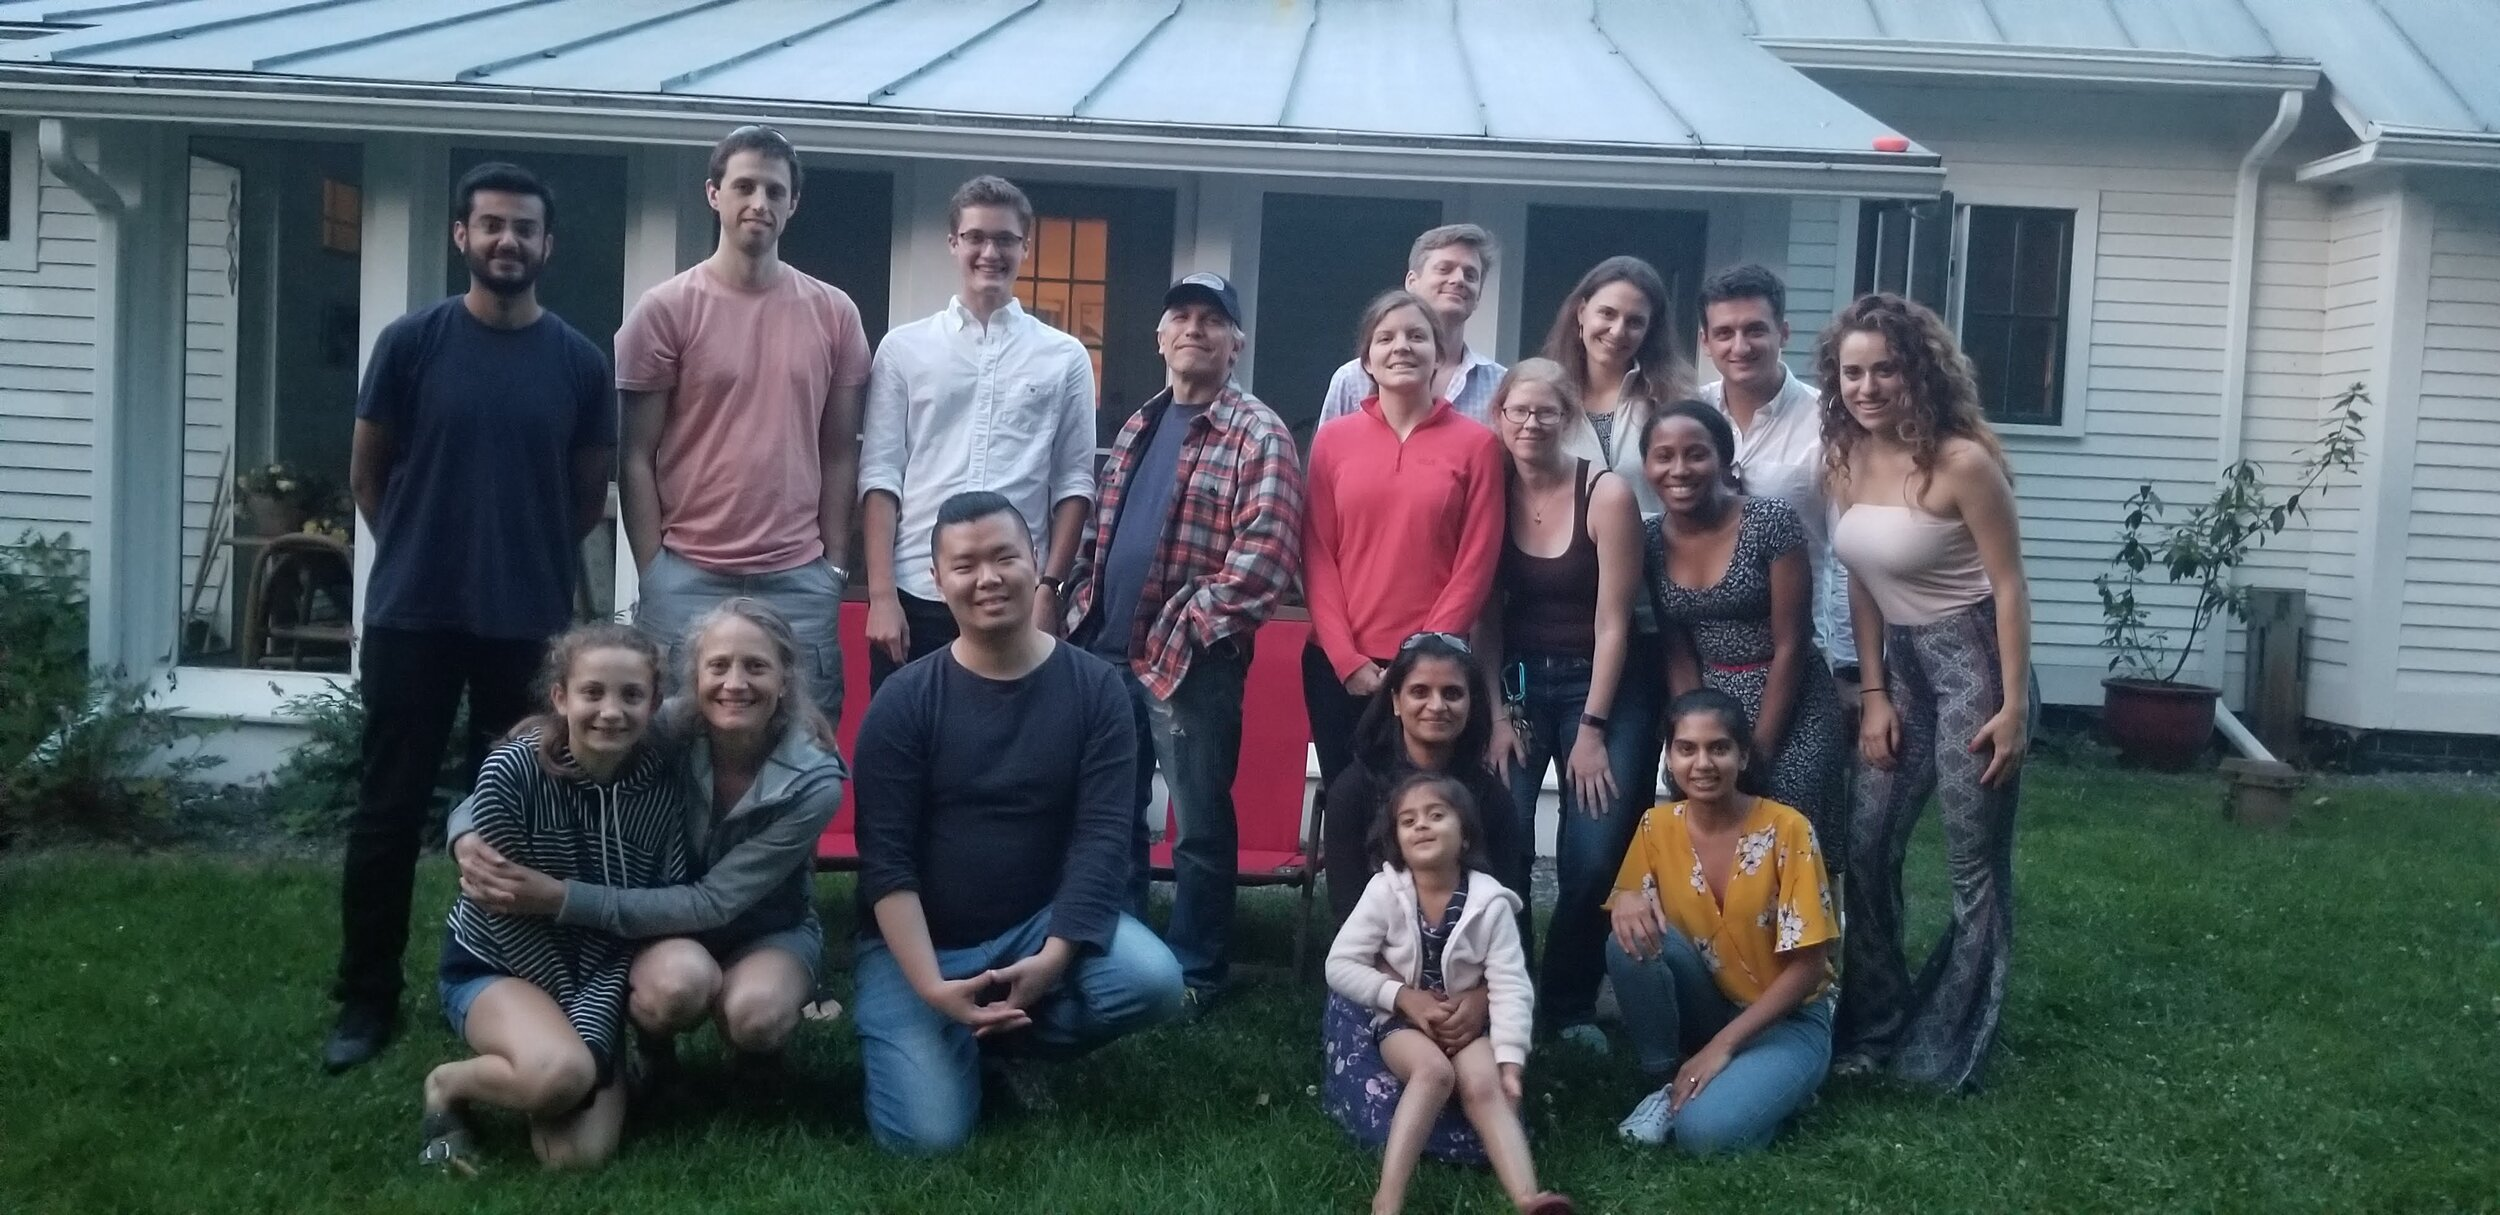 Bosco lab, friends and family summer 2019